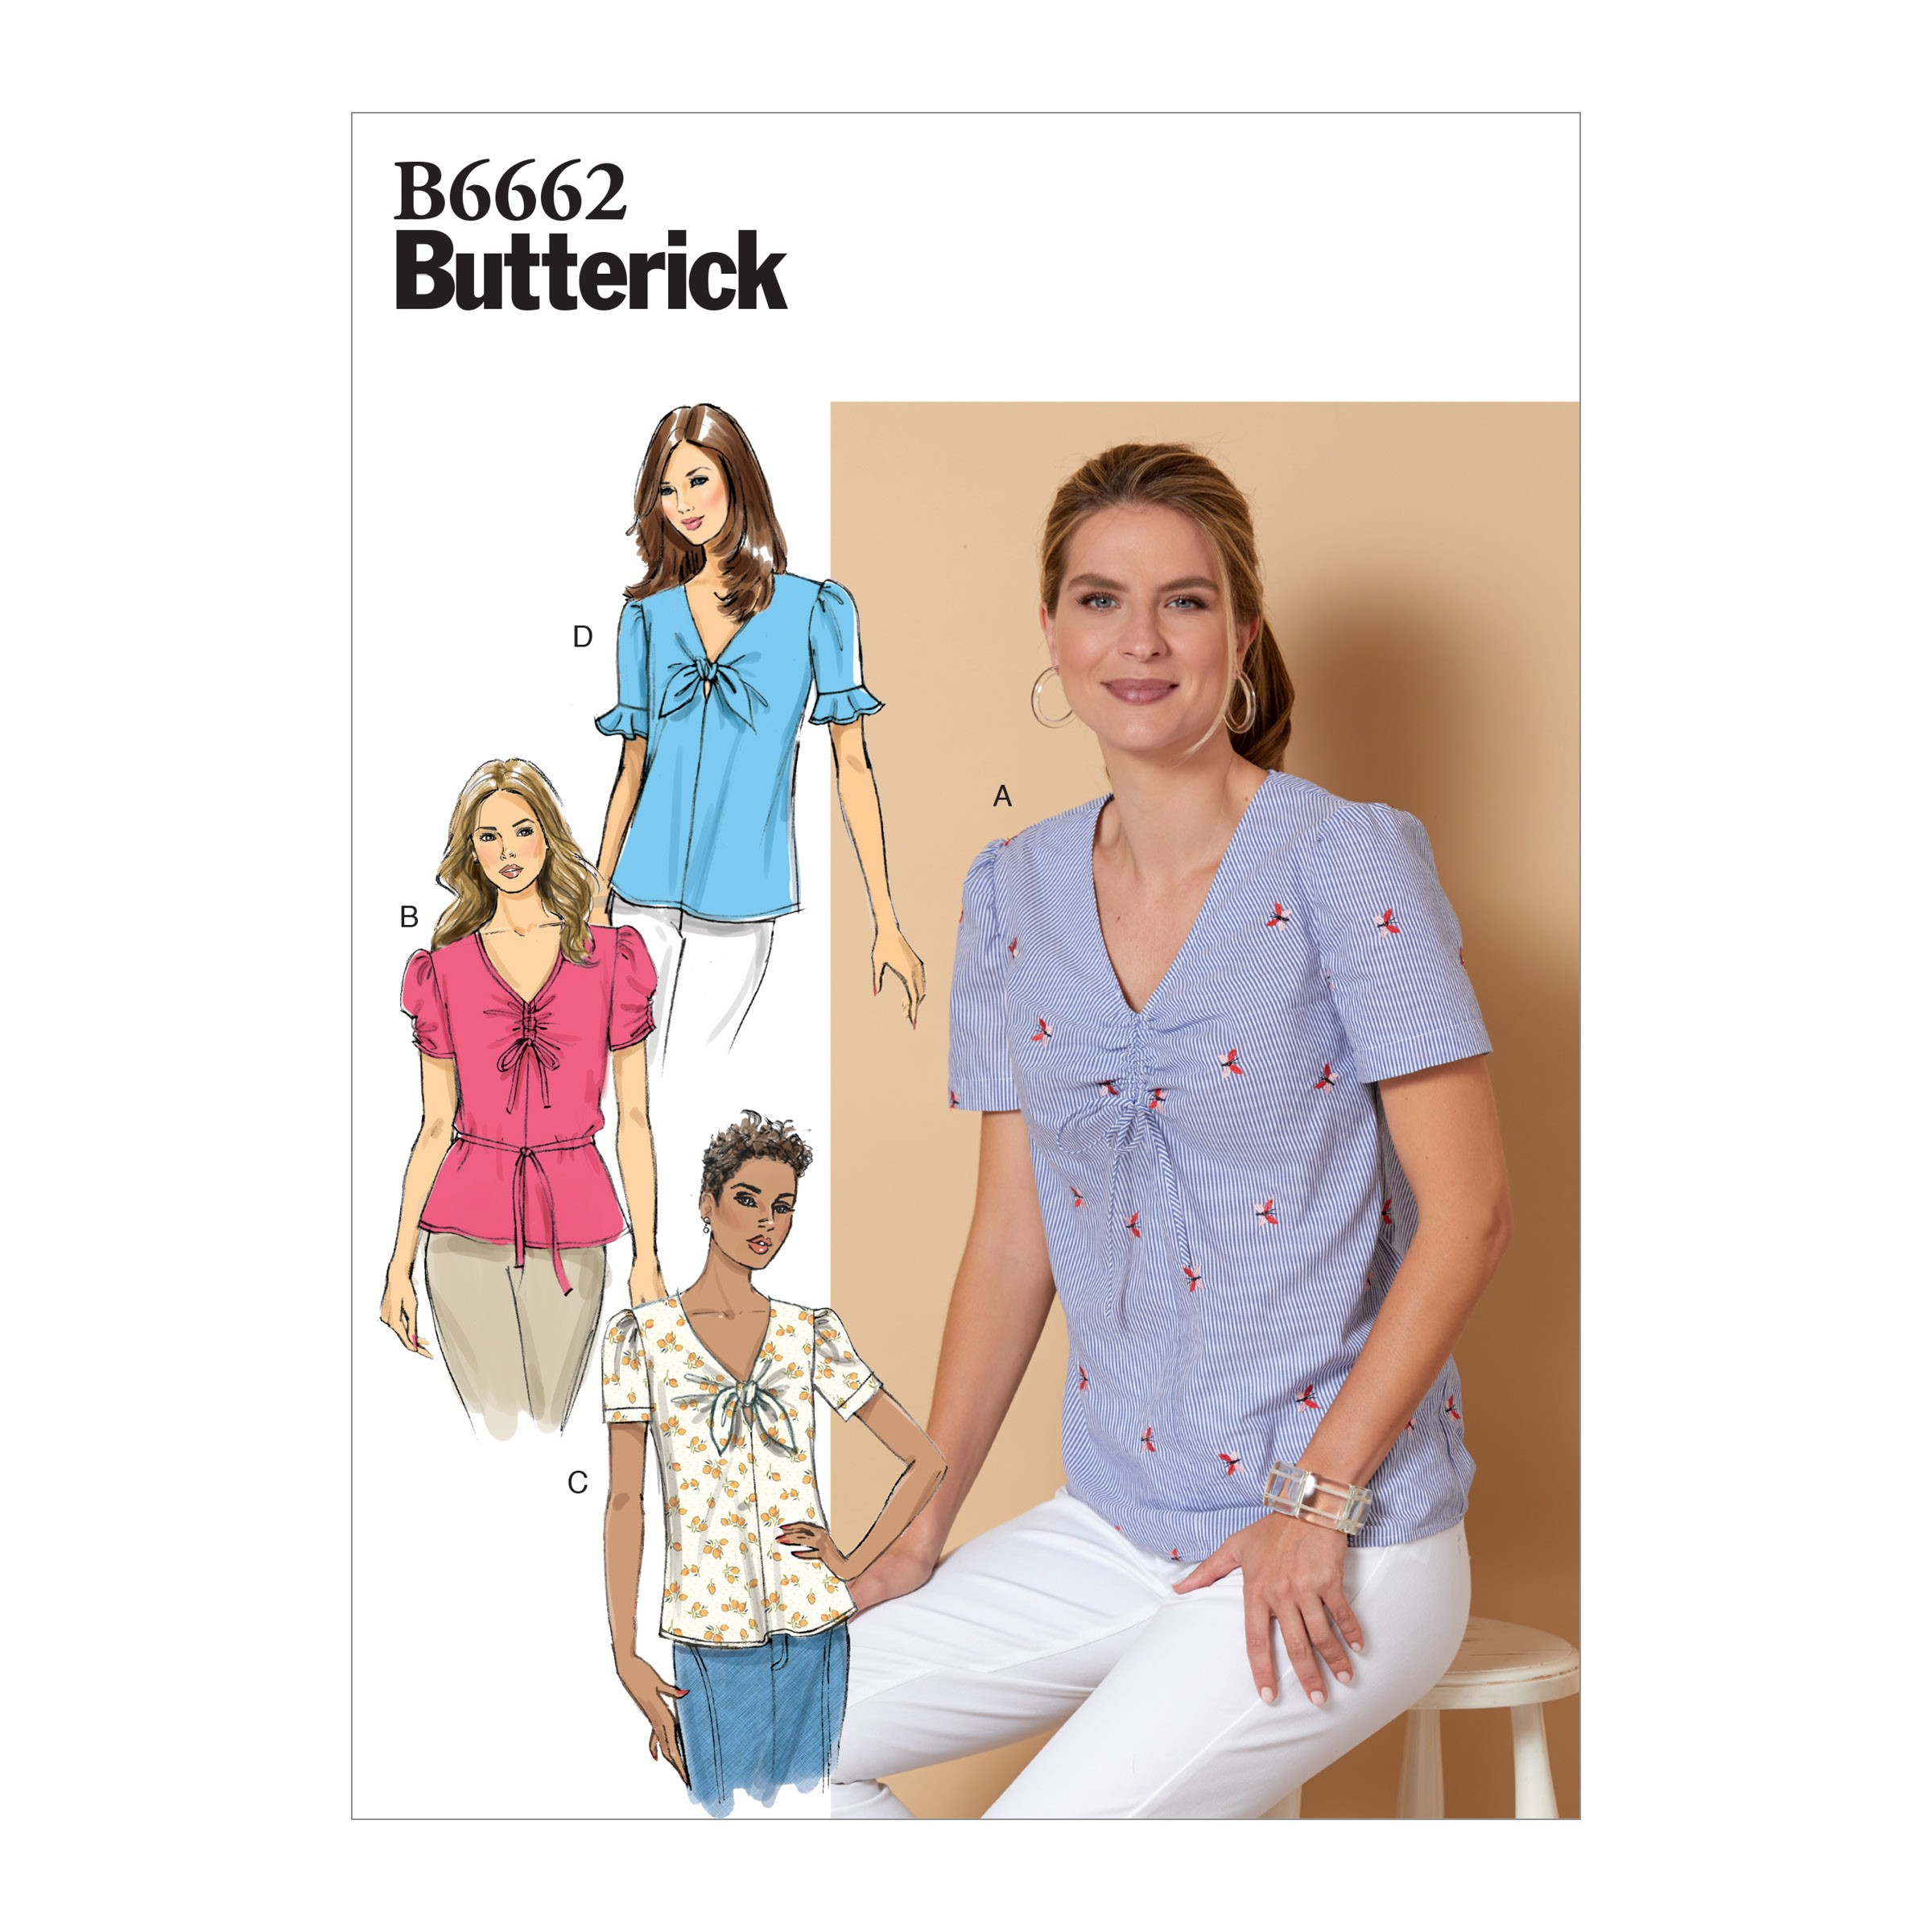 Butterick Sewing Pattern 6662 Misses' Semi-Fitted Pullover Top and Tie